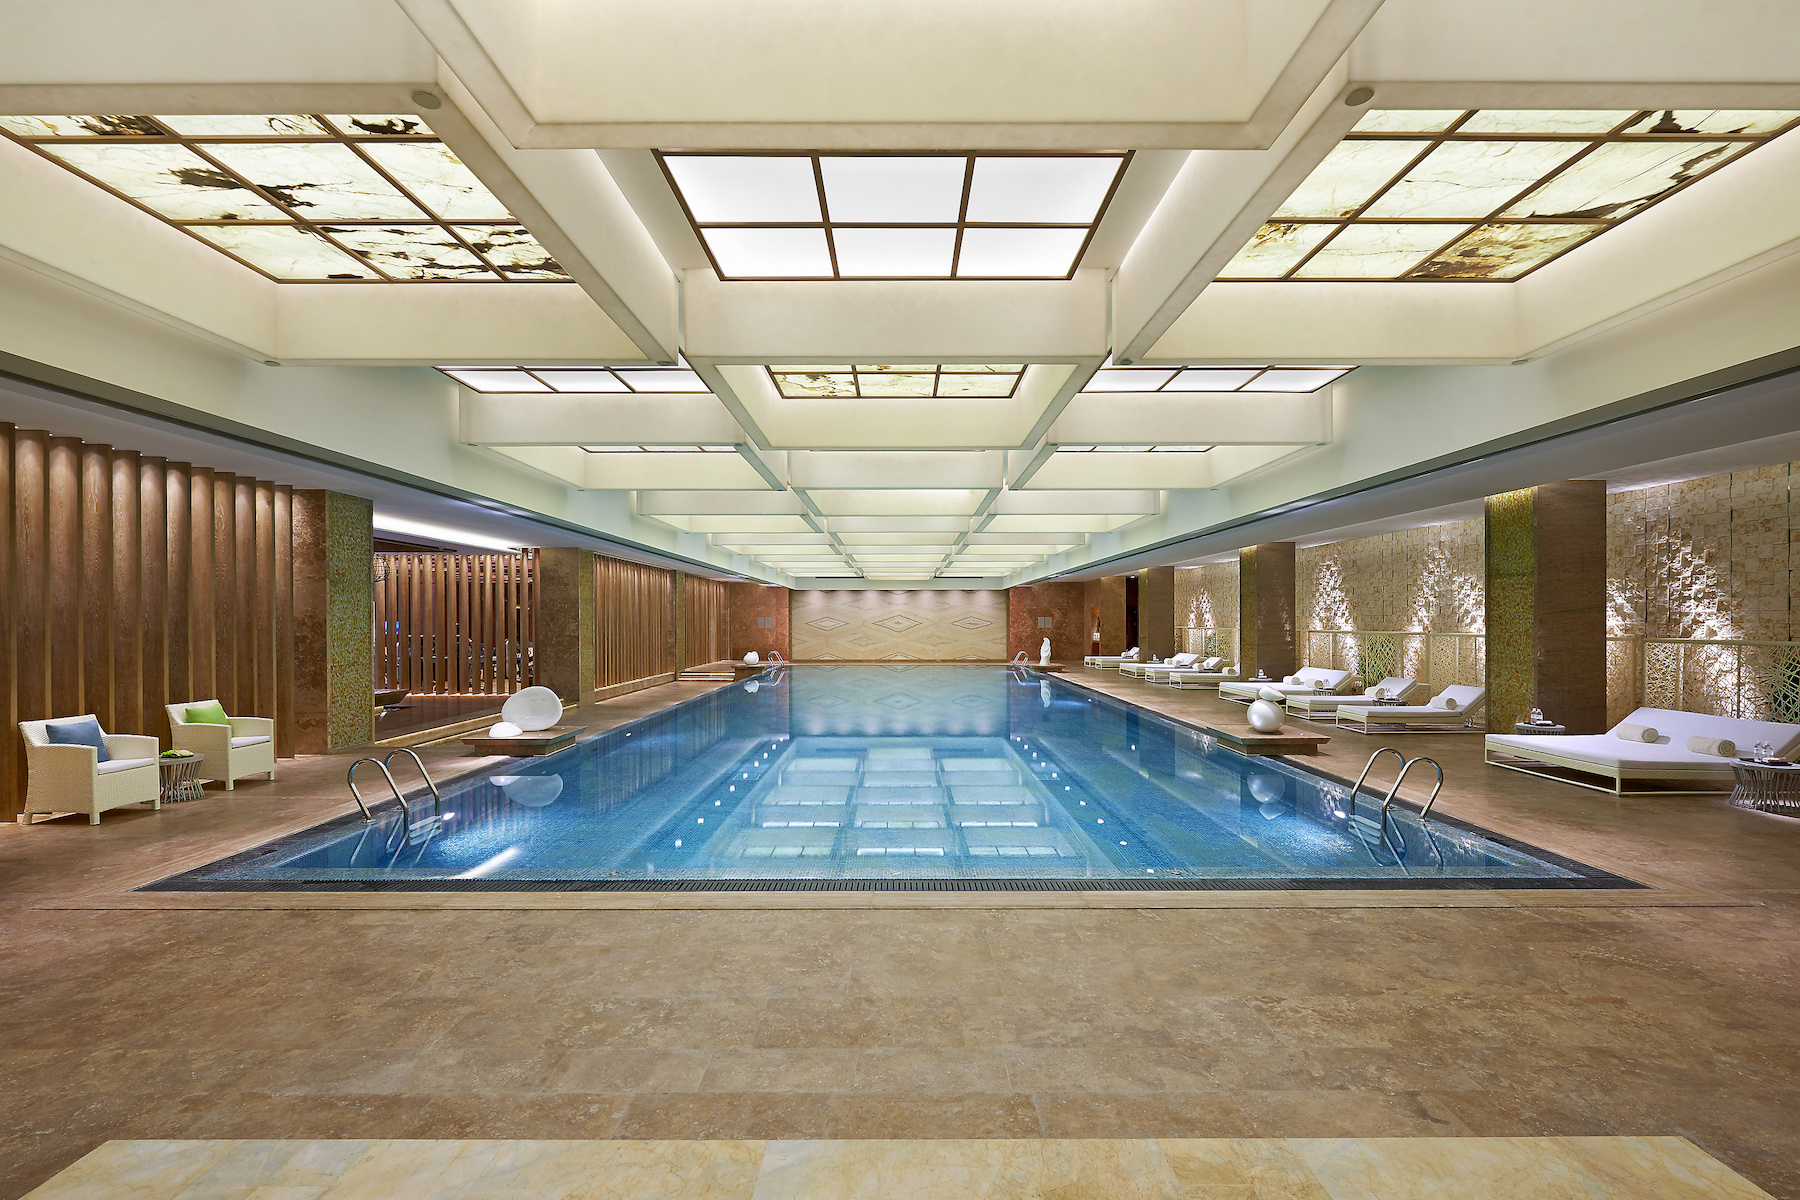 shanghai-luxury-spa-pool-01.jpg